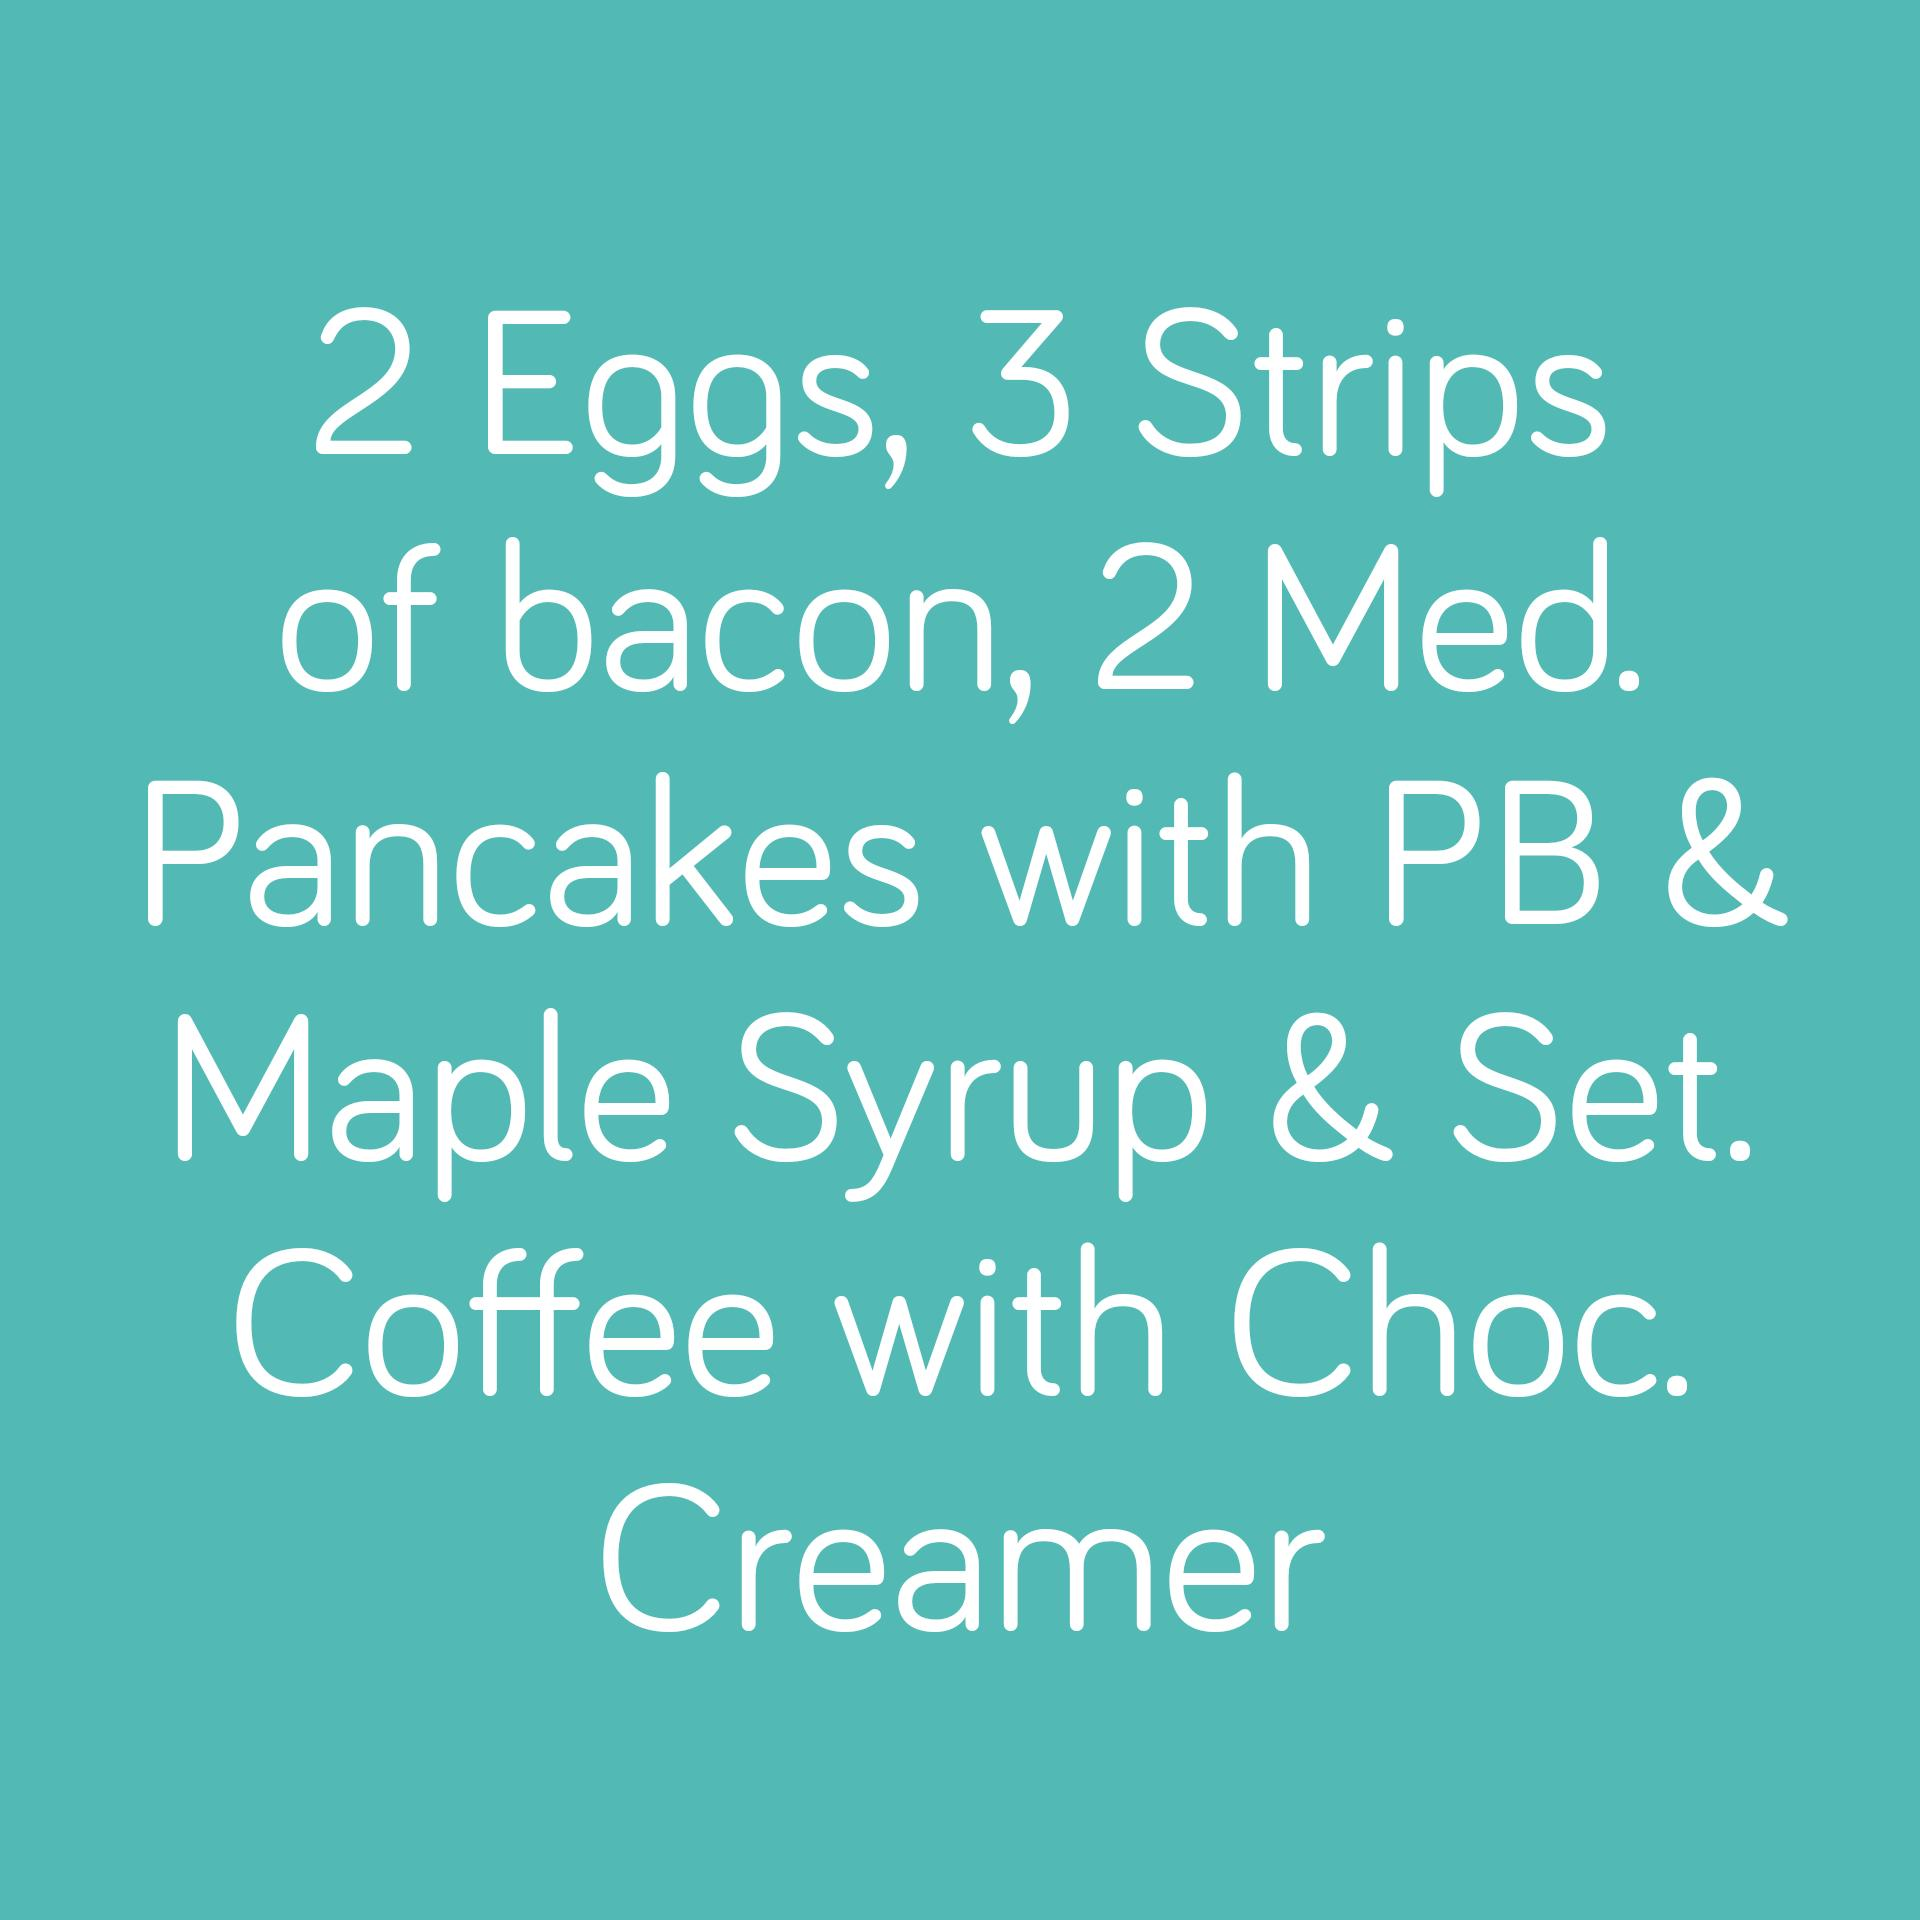 2 Eggs, 3 Strips of bacon, 2 Med. Pancakes with PB & Maple Syrup & Set. Coffee with Choc. Creamer